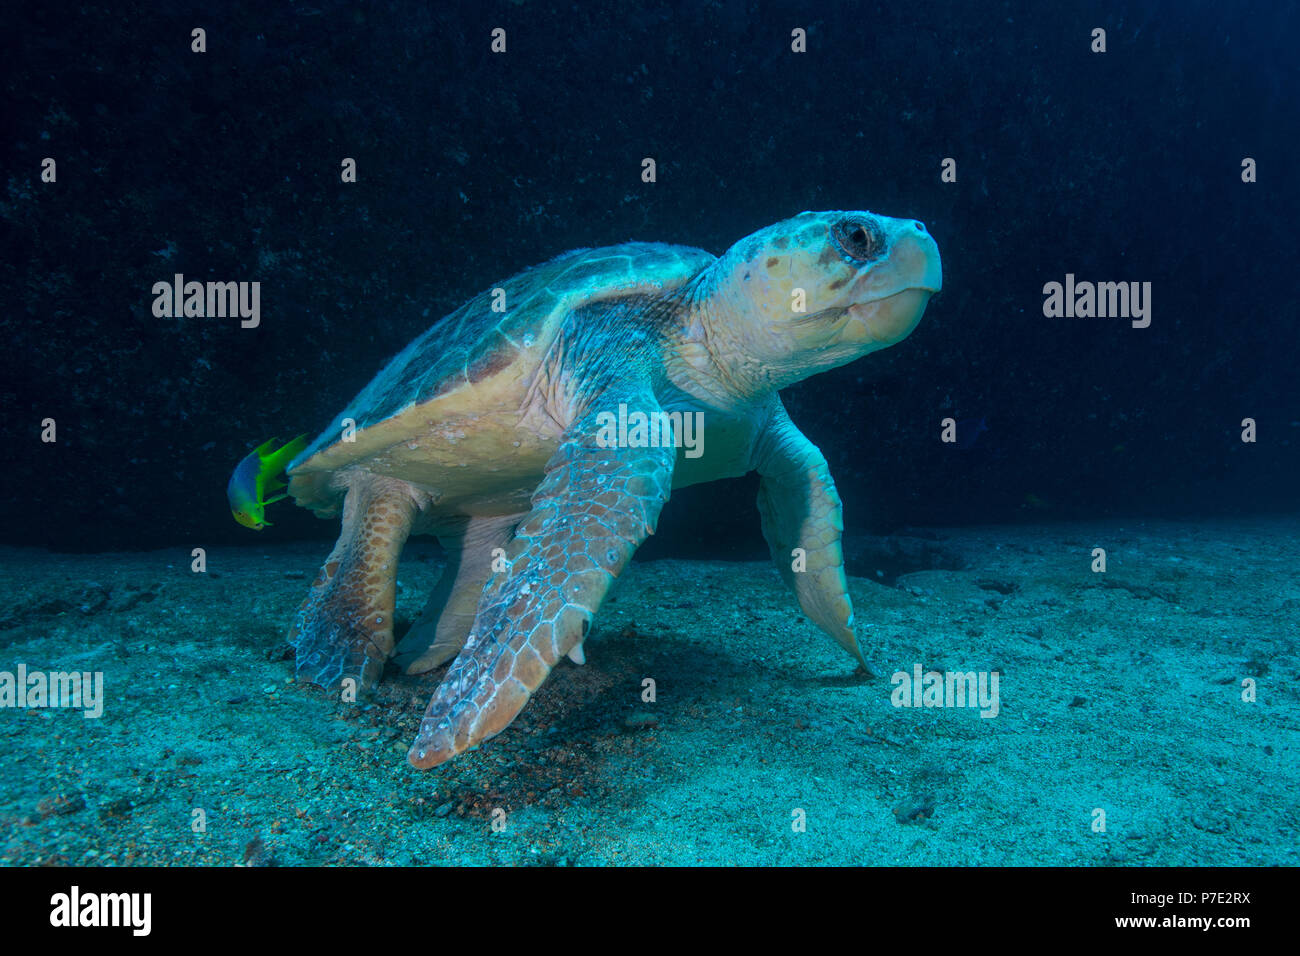 Large Loggerhead turtle gets cleaned of parasites by fish, Isla Mujeres, Quintana Roo, Mexico - Stock Image